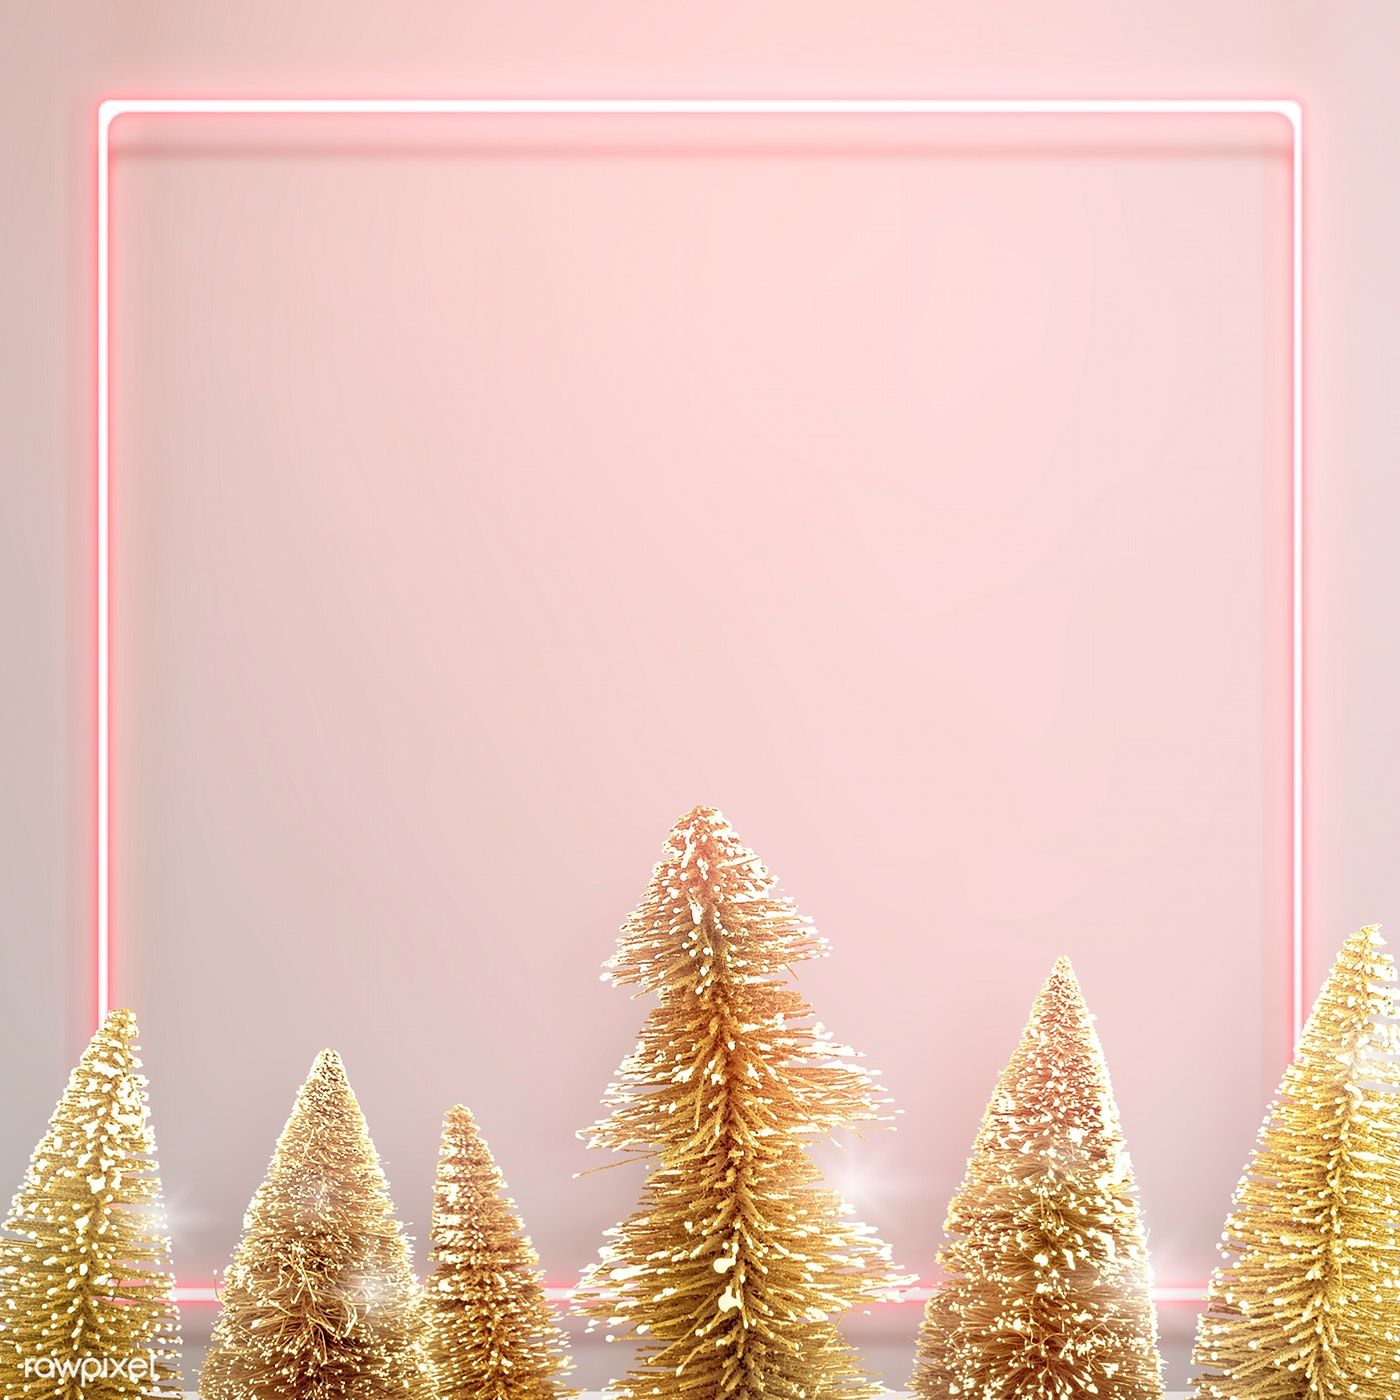 Download Premium Psd Of Pink Neon Frame With Gold Christmas Trees Gold Christmas Tree Christmas Wallpaper Gold Christmas